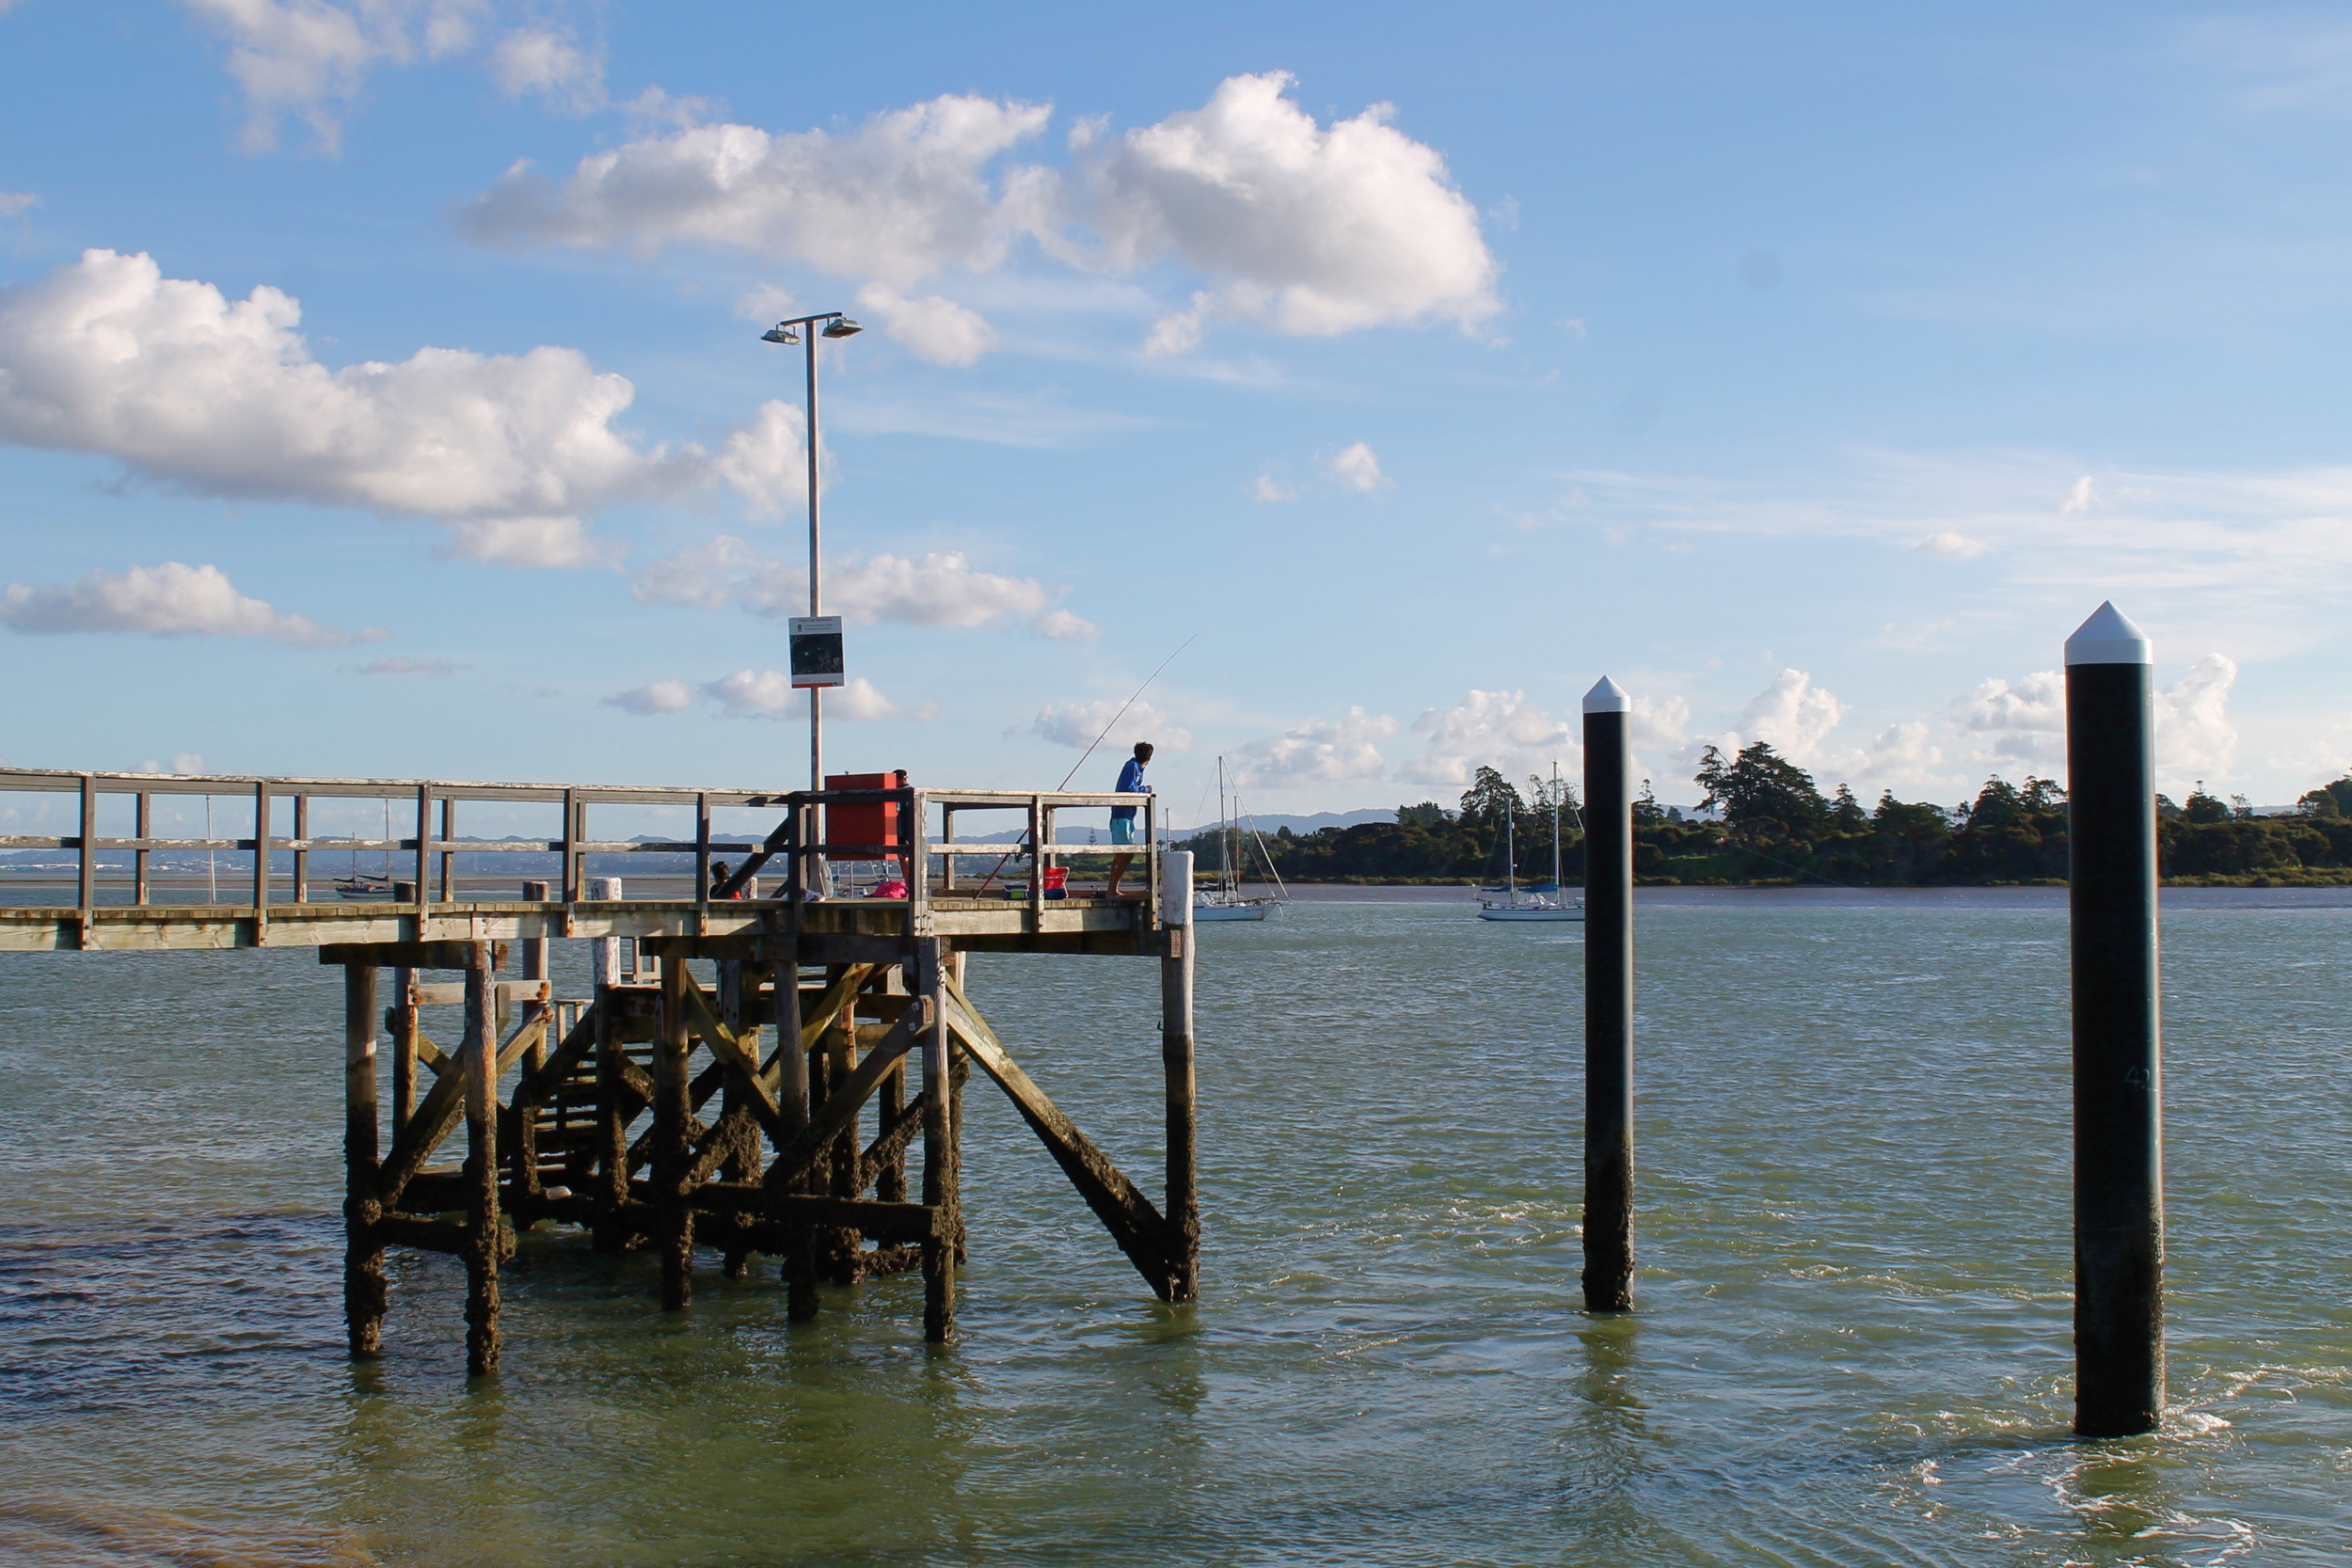 From the Beach Haven ferry dock.